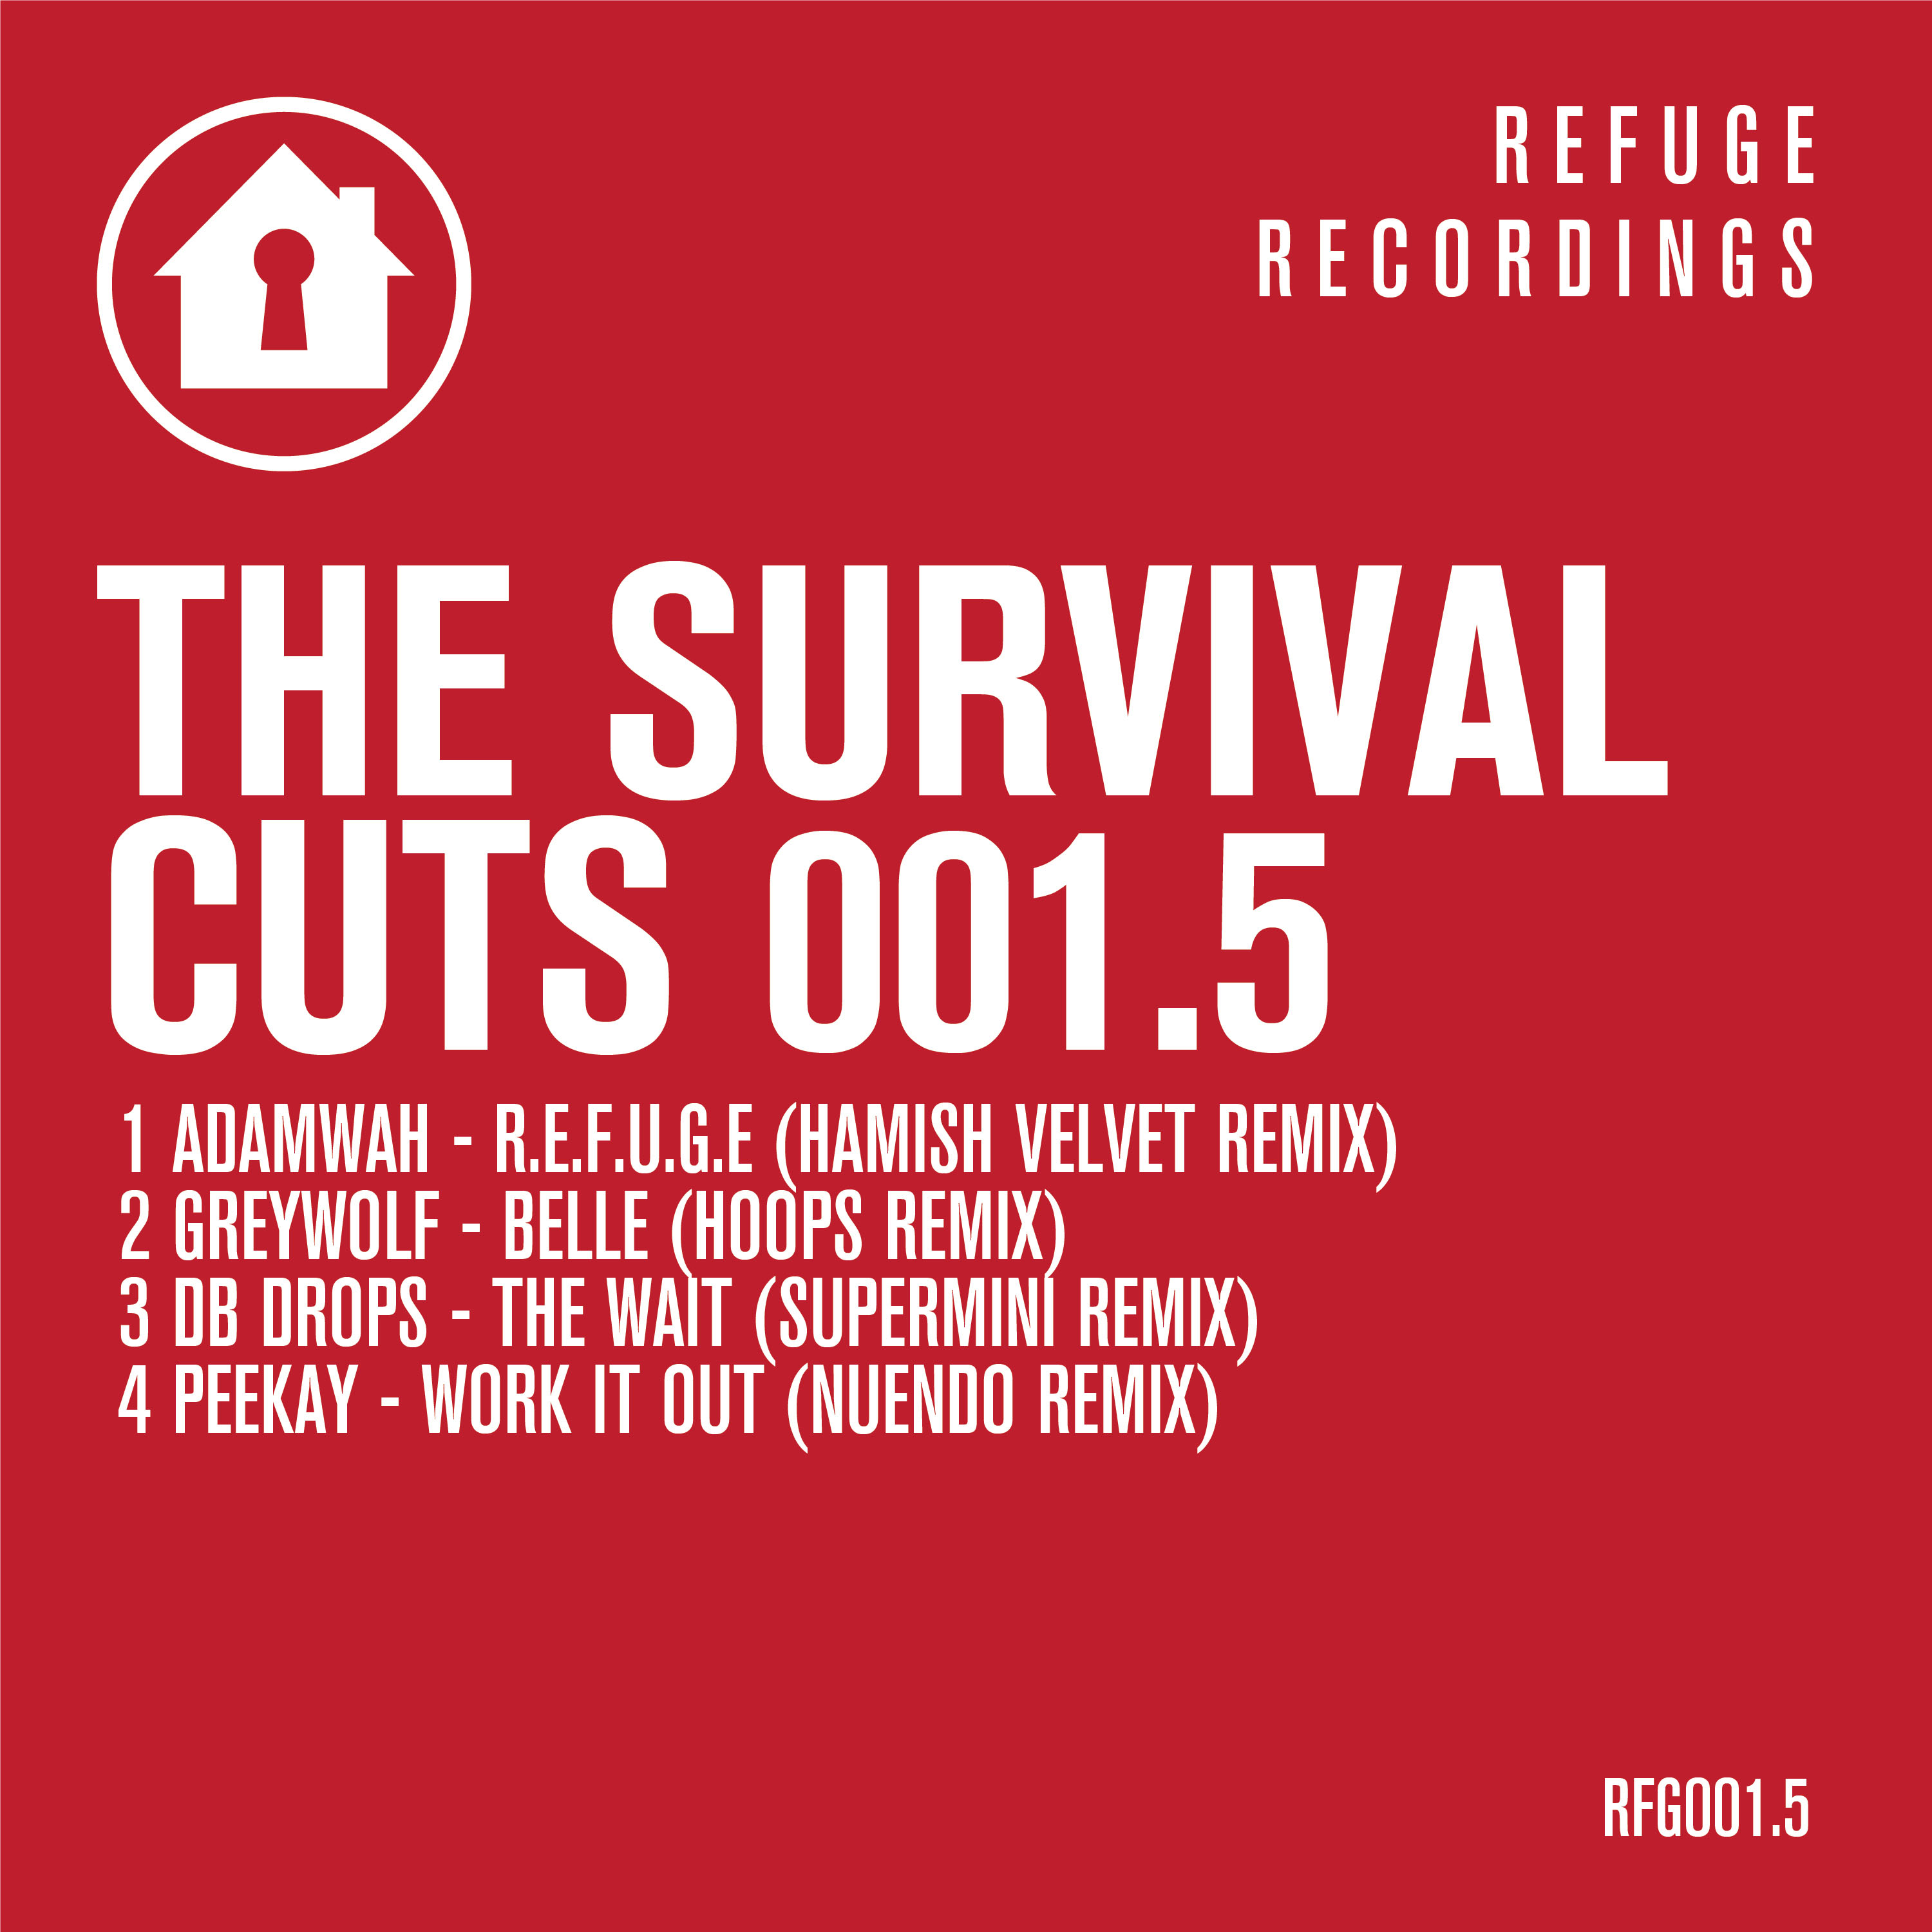 The Survival Cuts 001.5